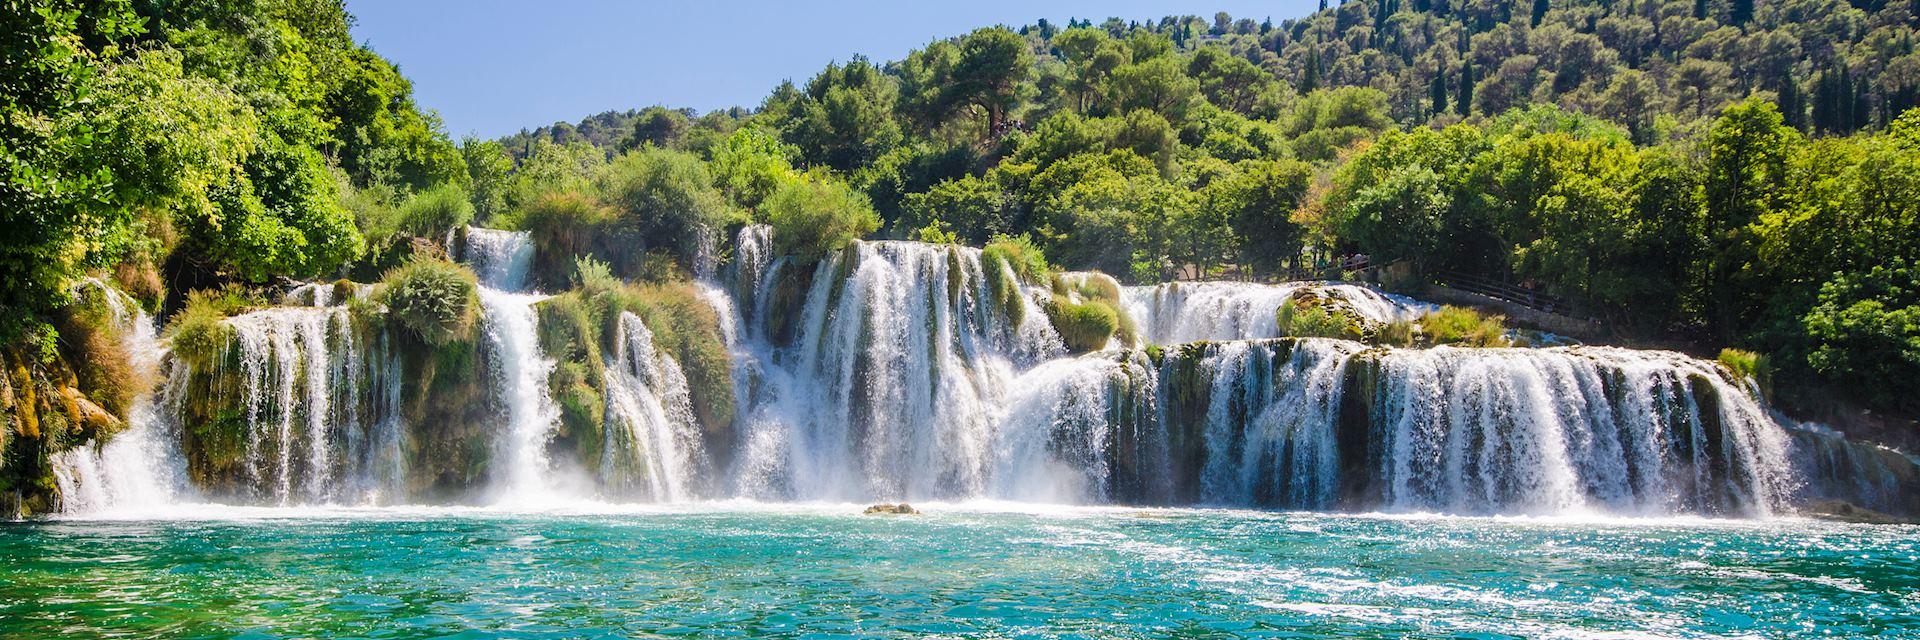 Krka river waterfalls, Dalmatia